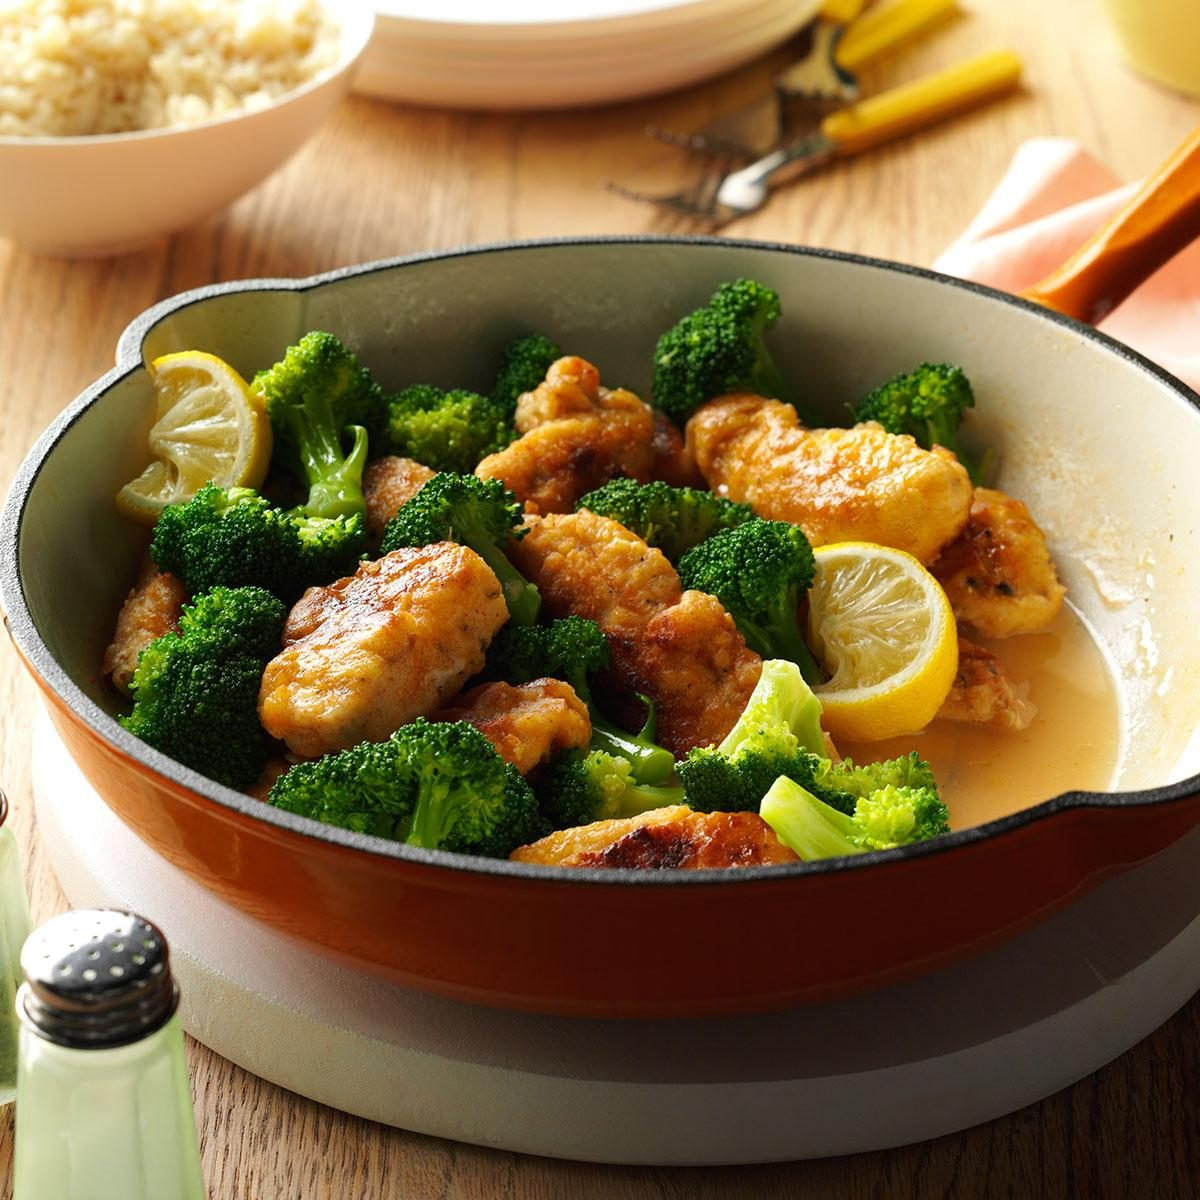 My Mother S Lemony Chicken With Broccoli Recipe How To Make It Taste Of Home